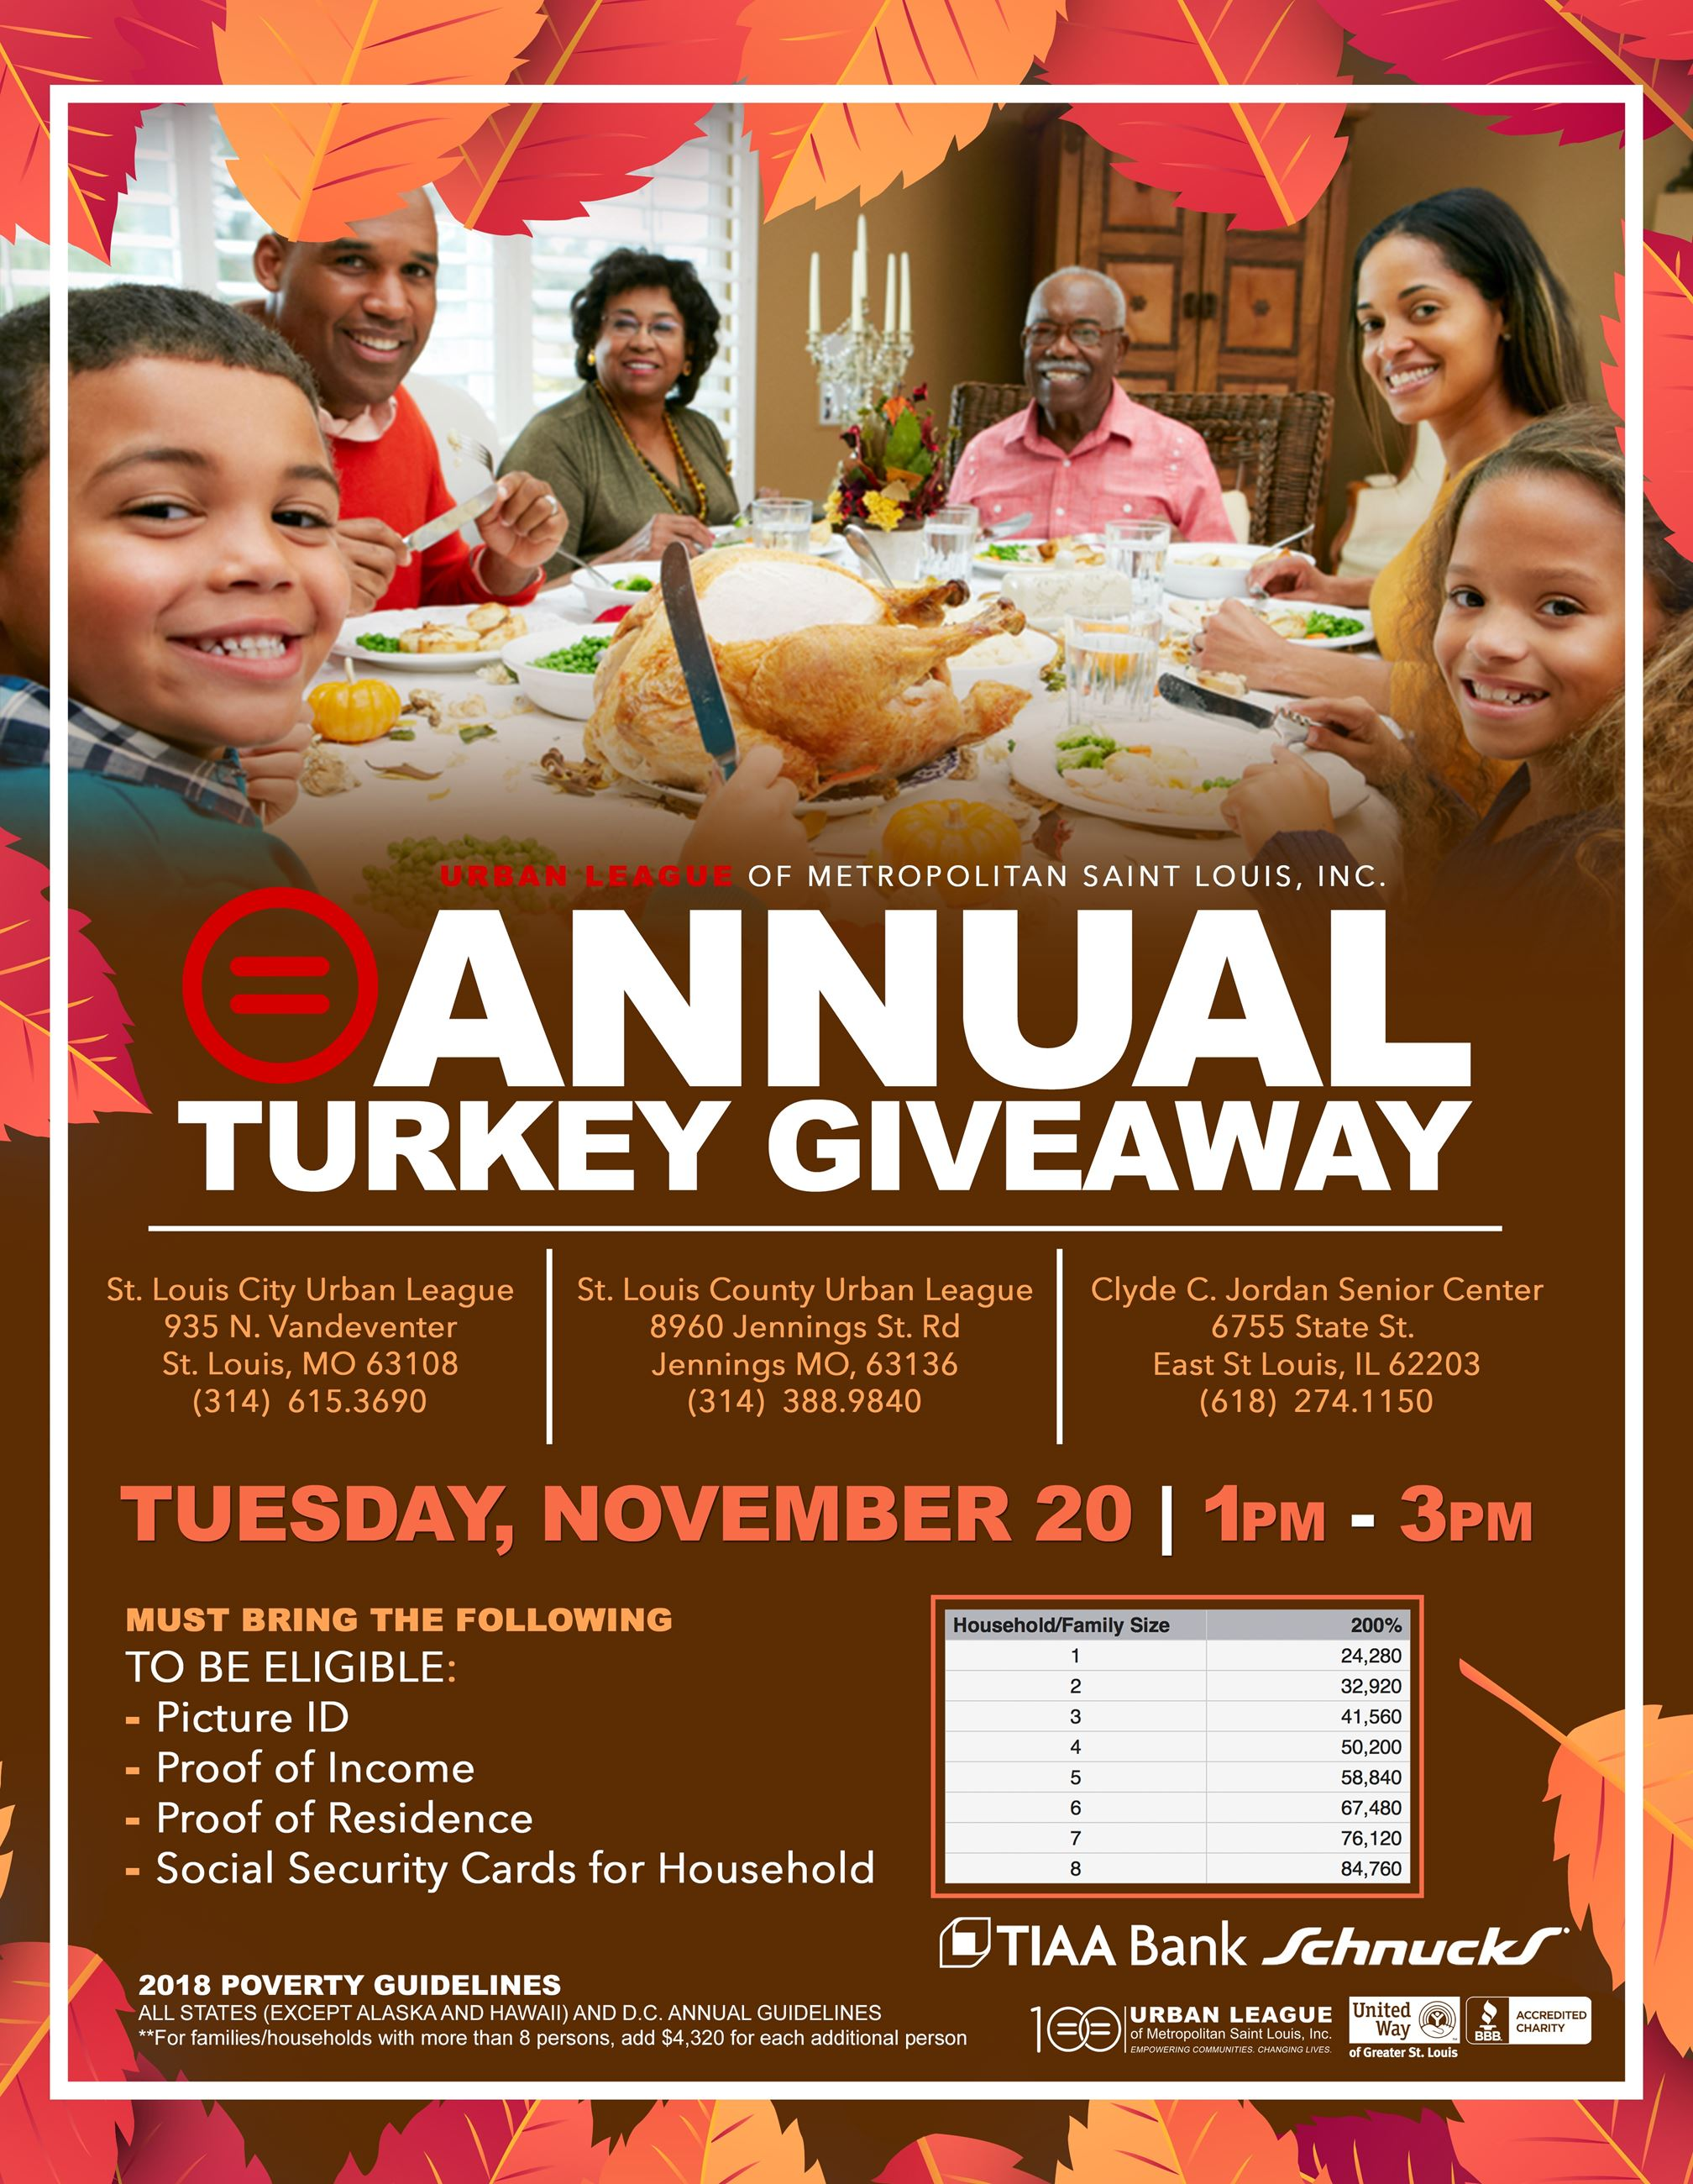 Annual Turkey Giveaway 2018